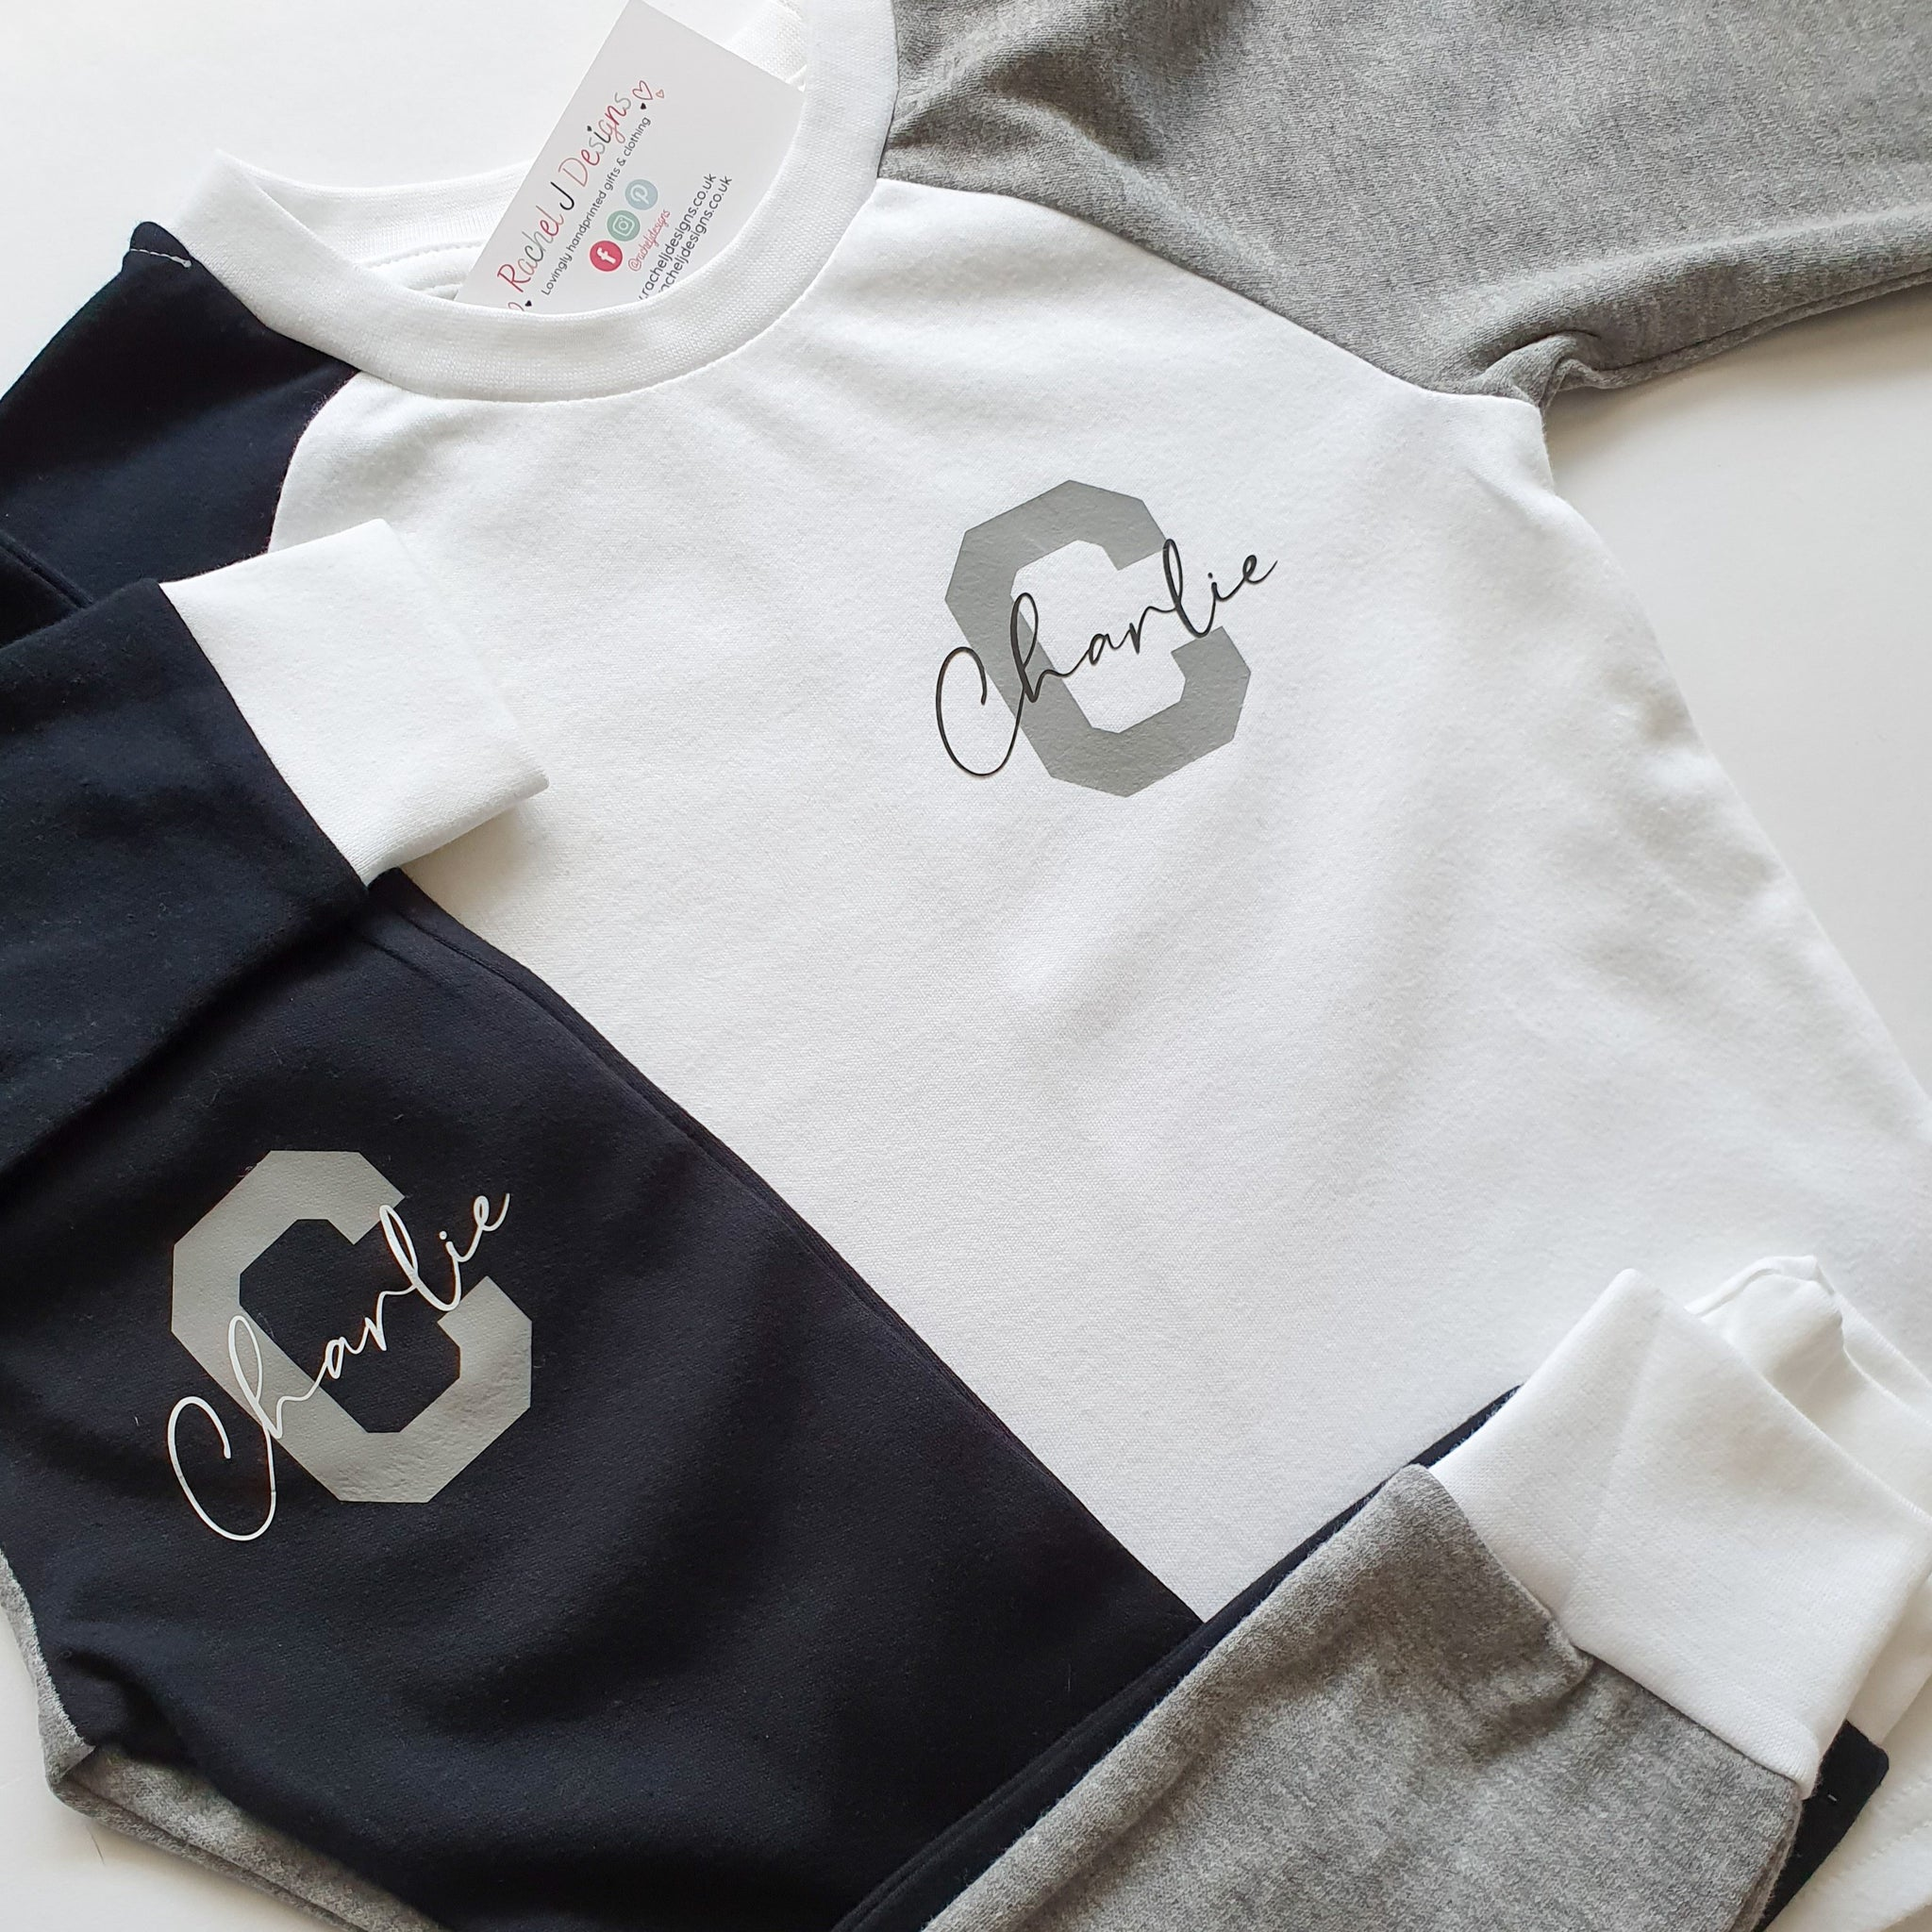 Monochrome Personalised Children's Loungewear Sets Rachel J Designs